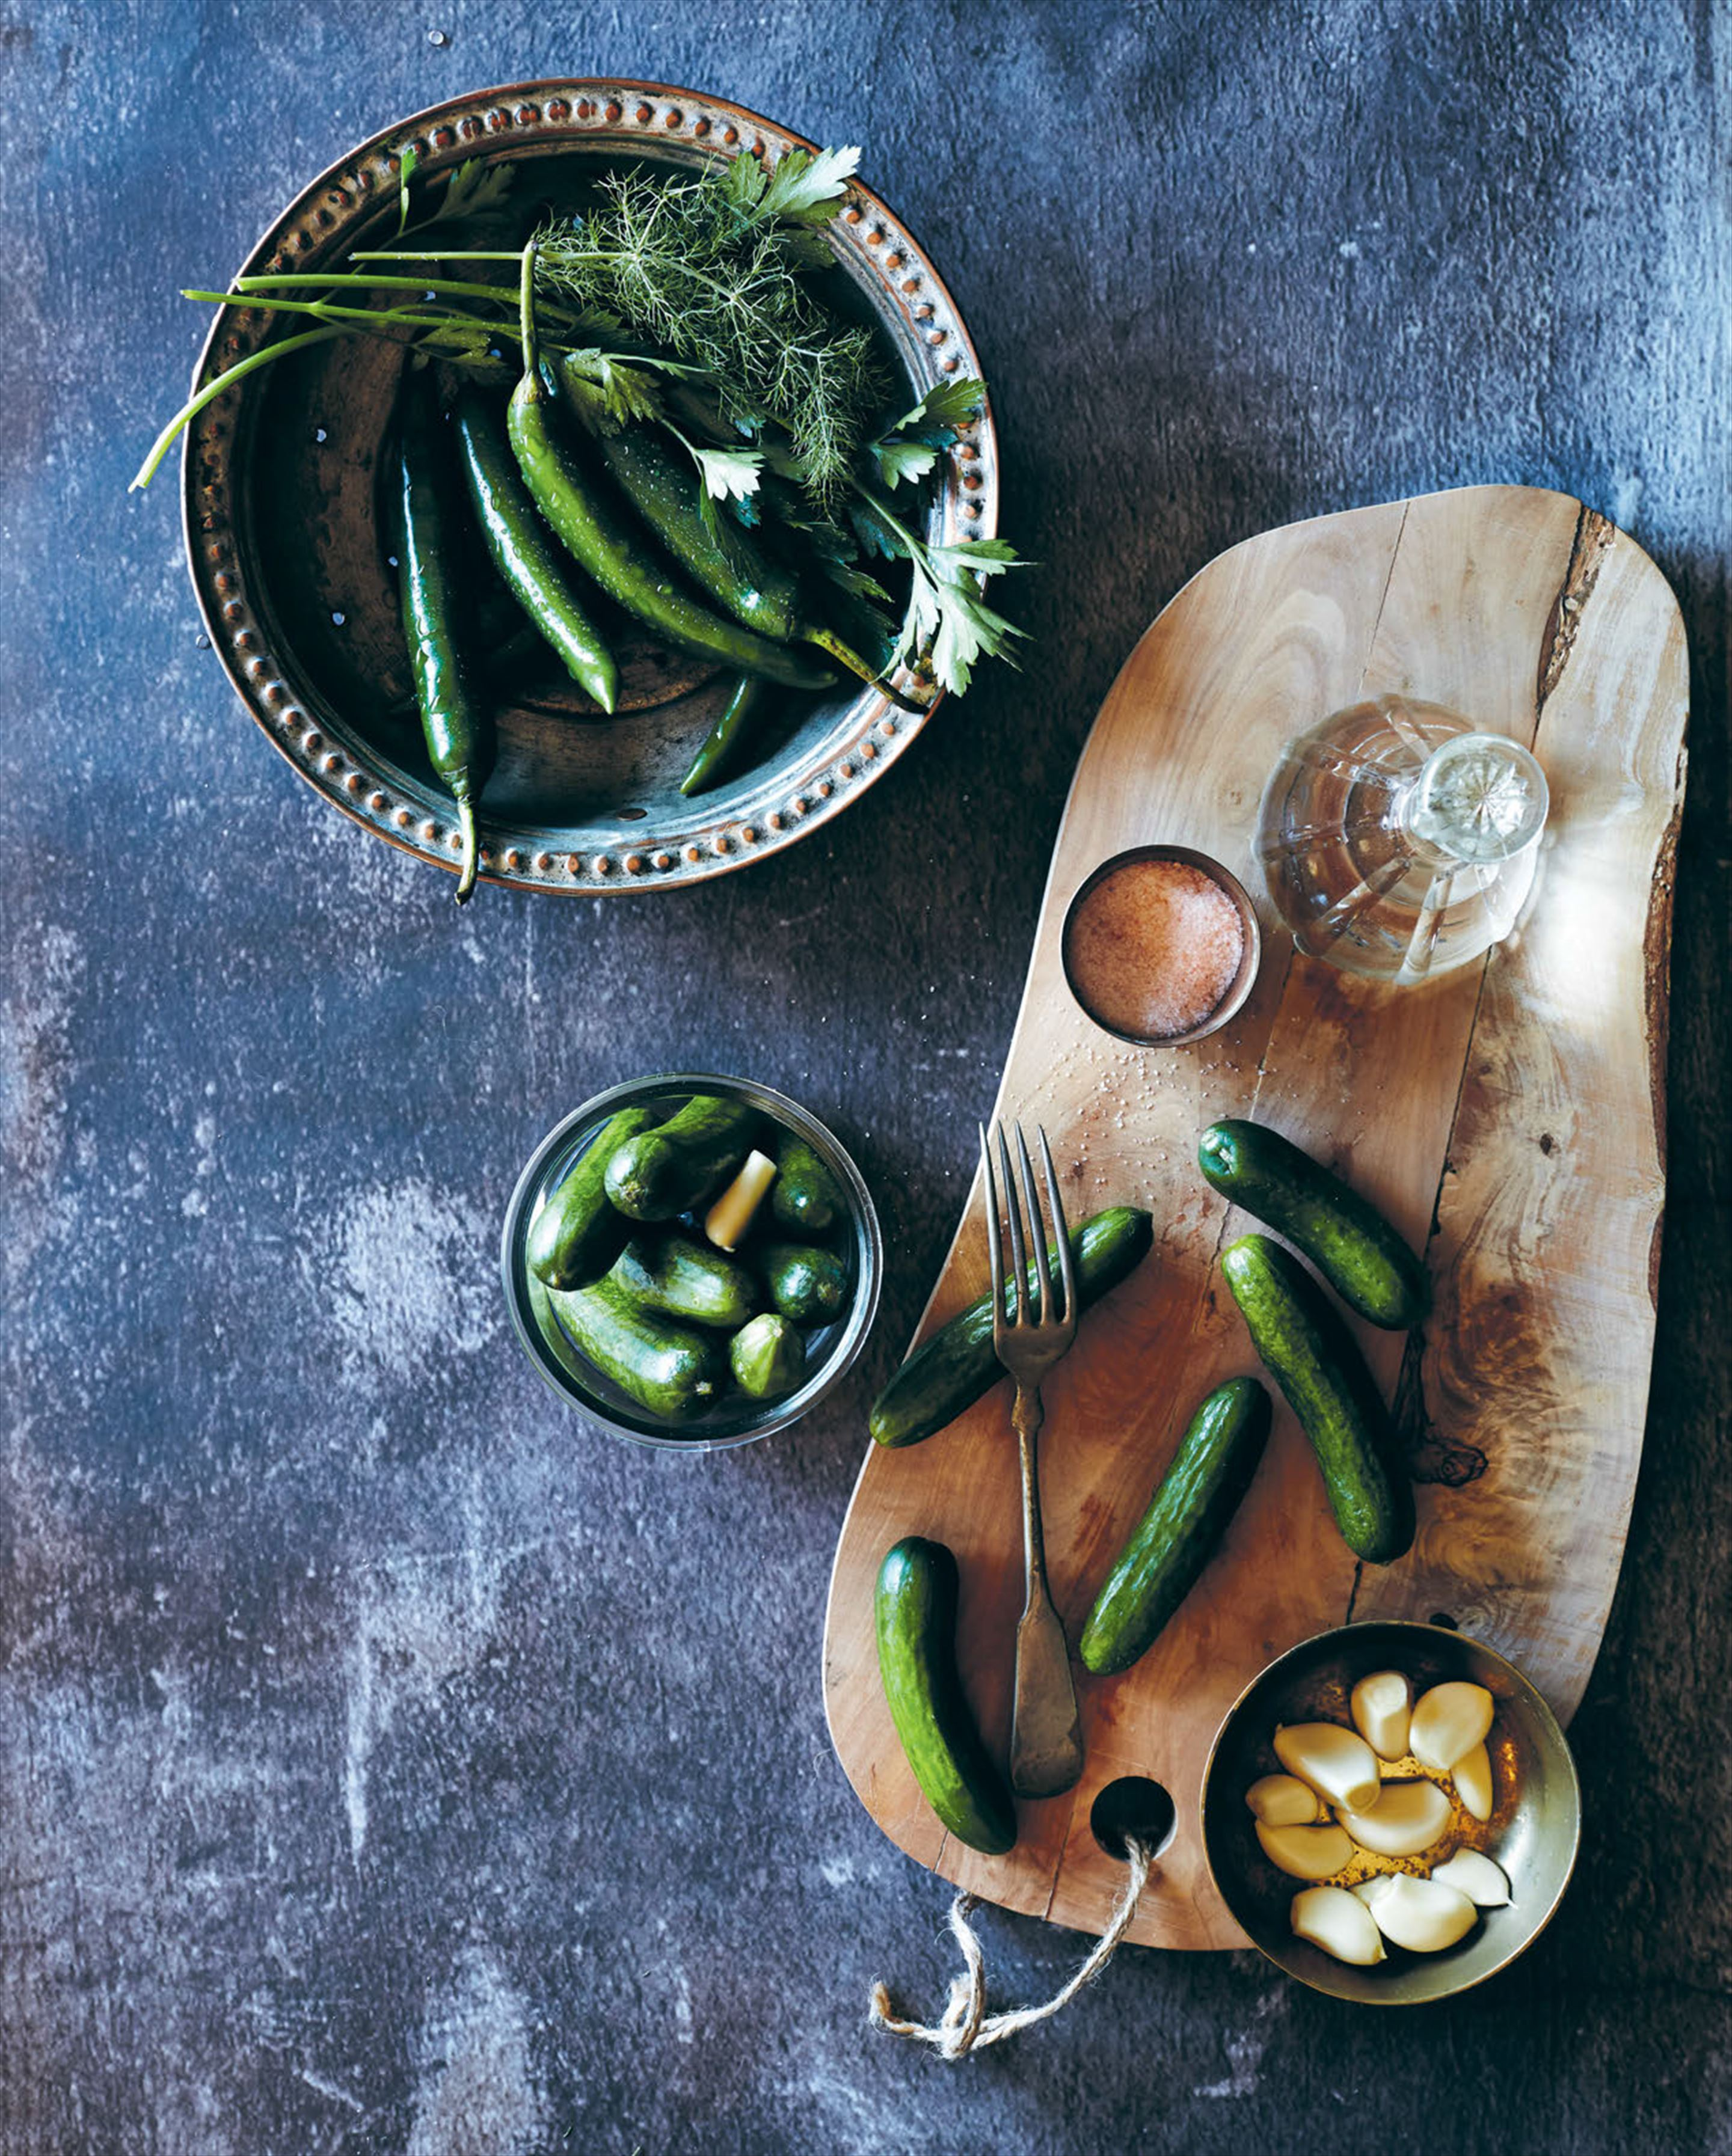 Pickled cucumbers & green chillies